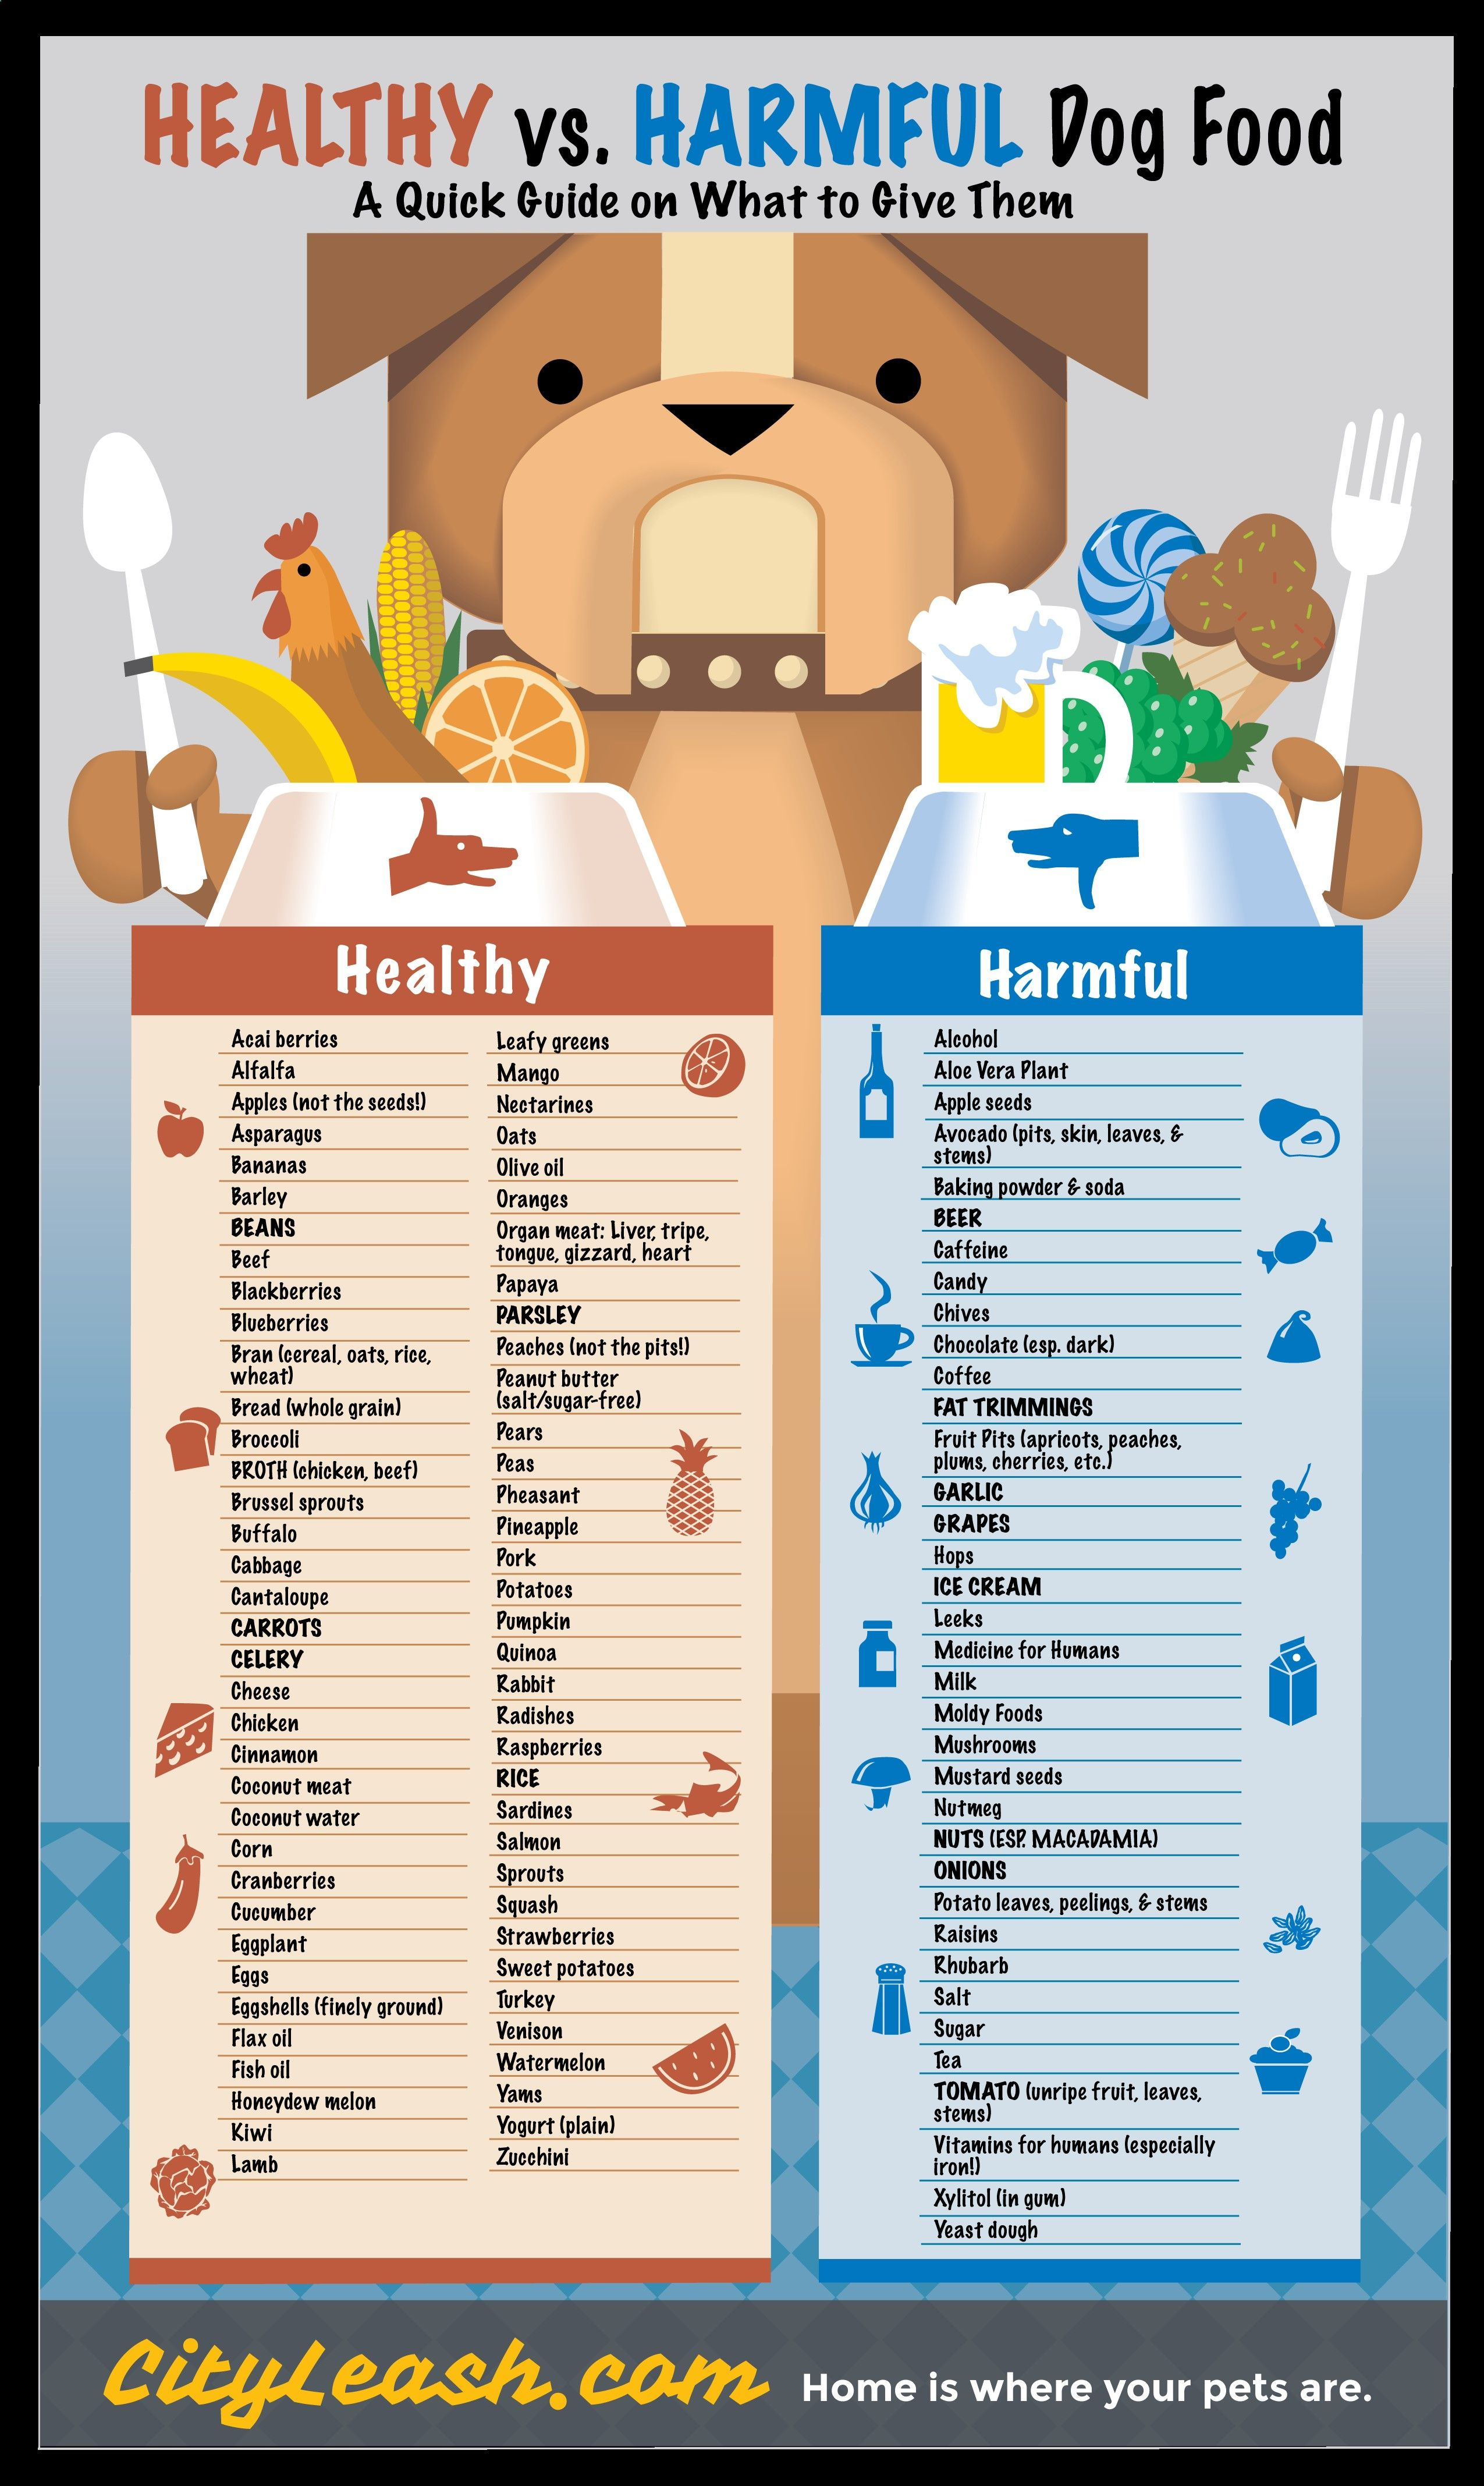 A Quick Guide On What Kinds Of Food To Give Your Dogs 4knines